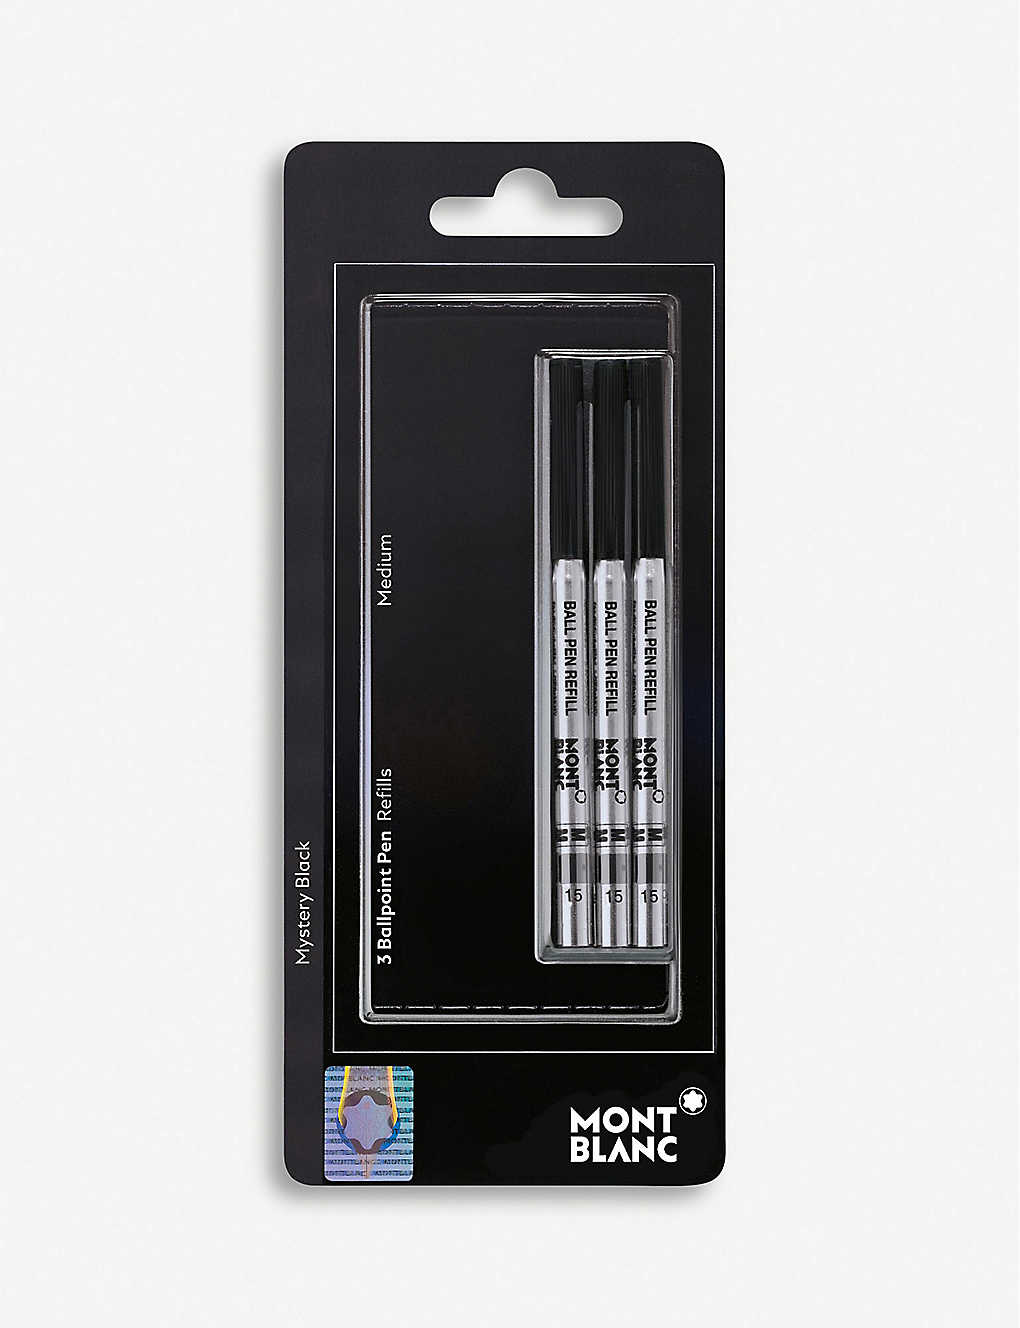 MONTBLANC: Set of three mystery black ballpoint refills